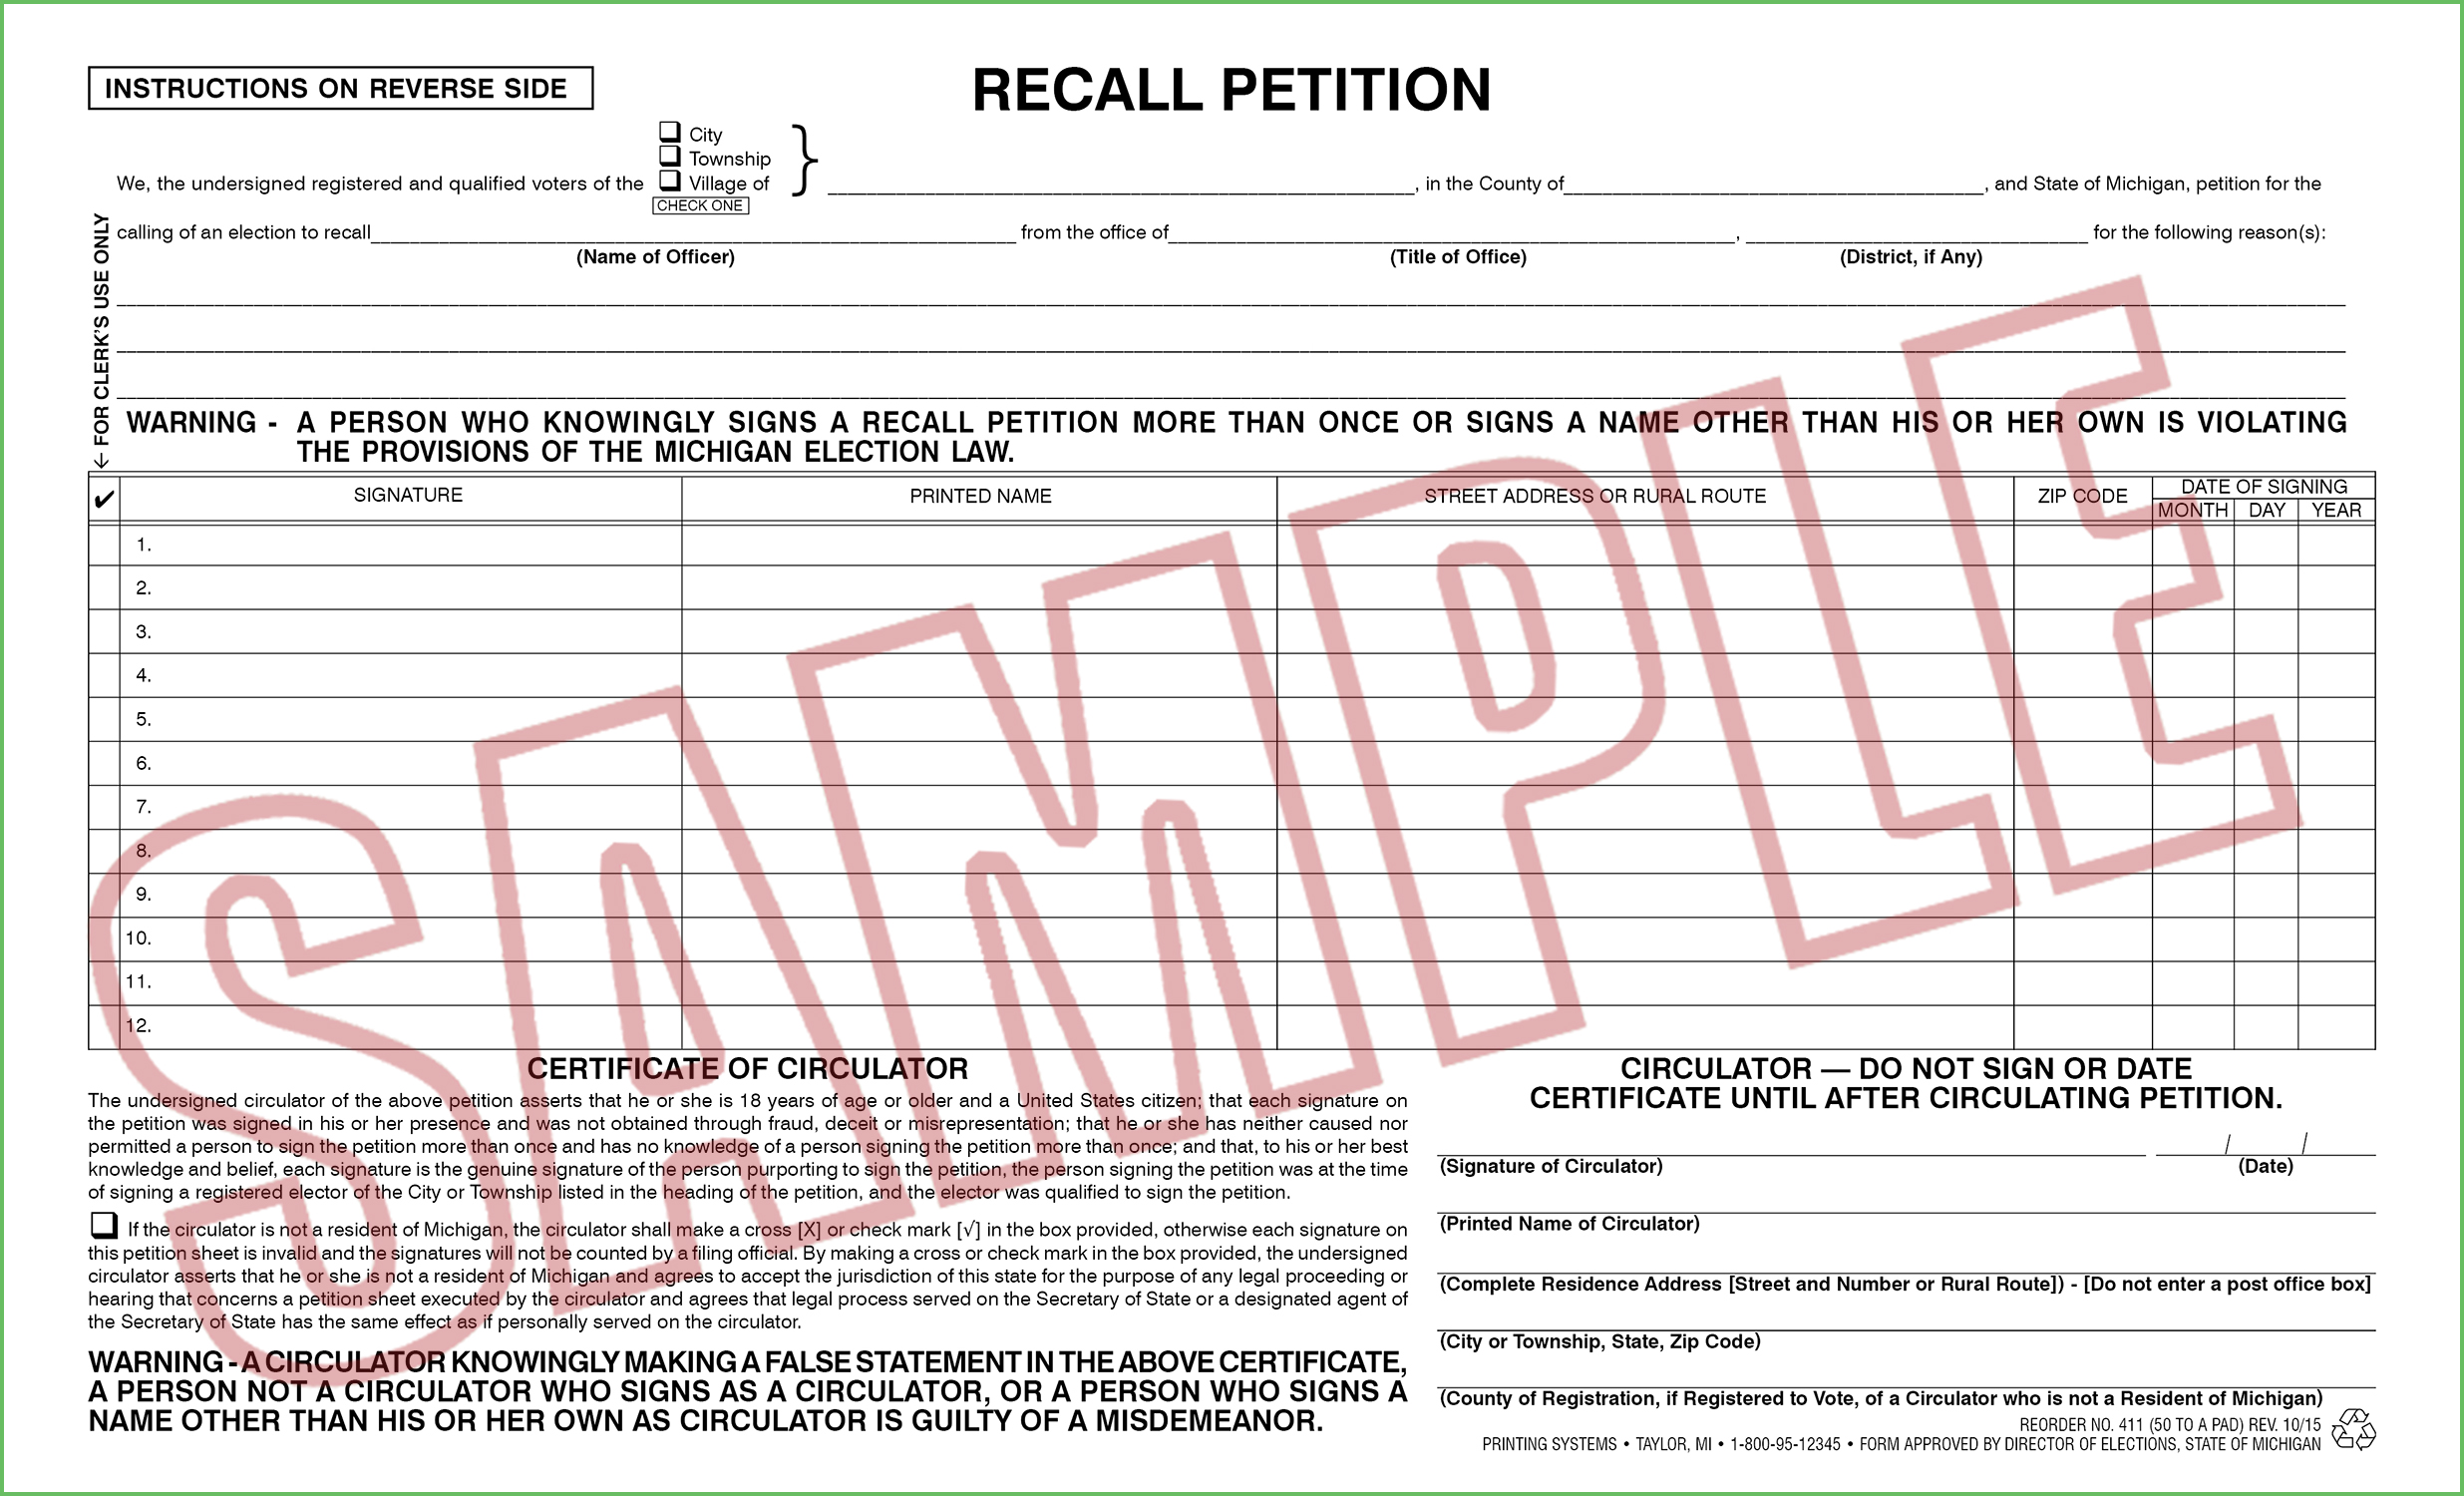 411 Recall Petition (Ci/Twp/Village) (50 per pad) Rev. 02/15